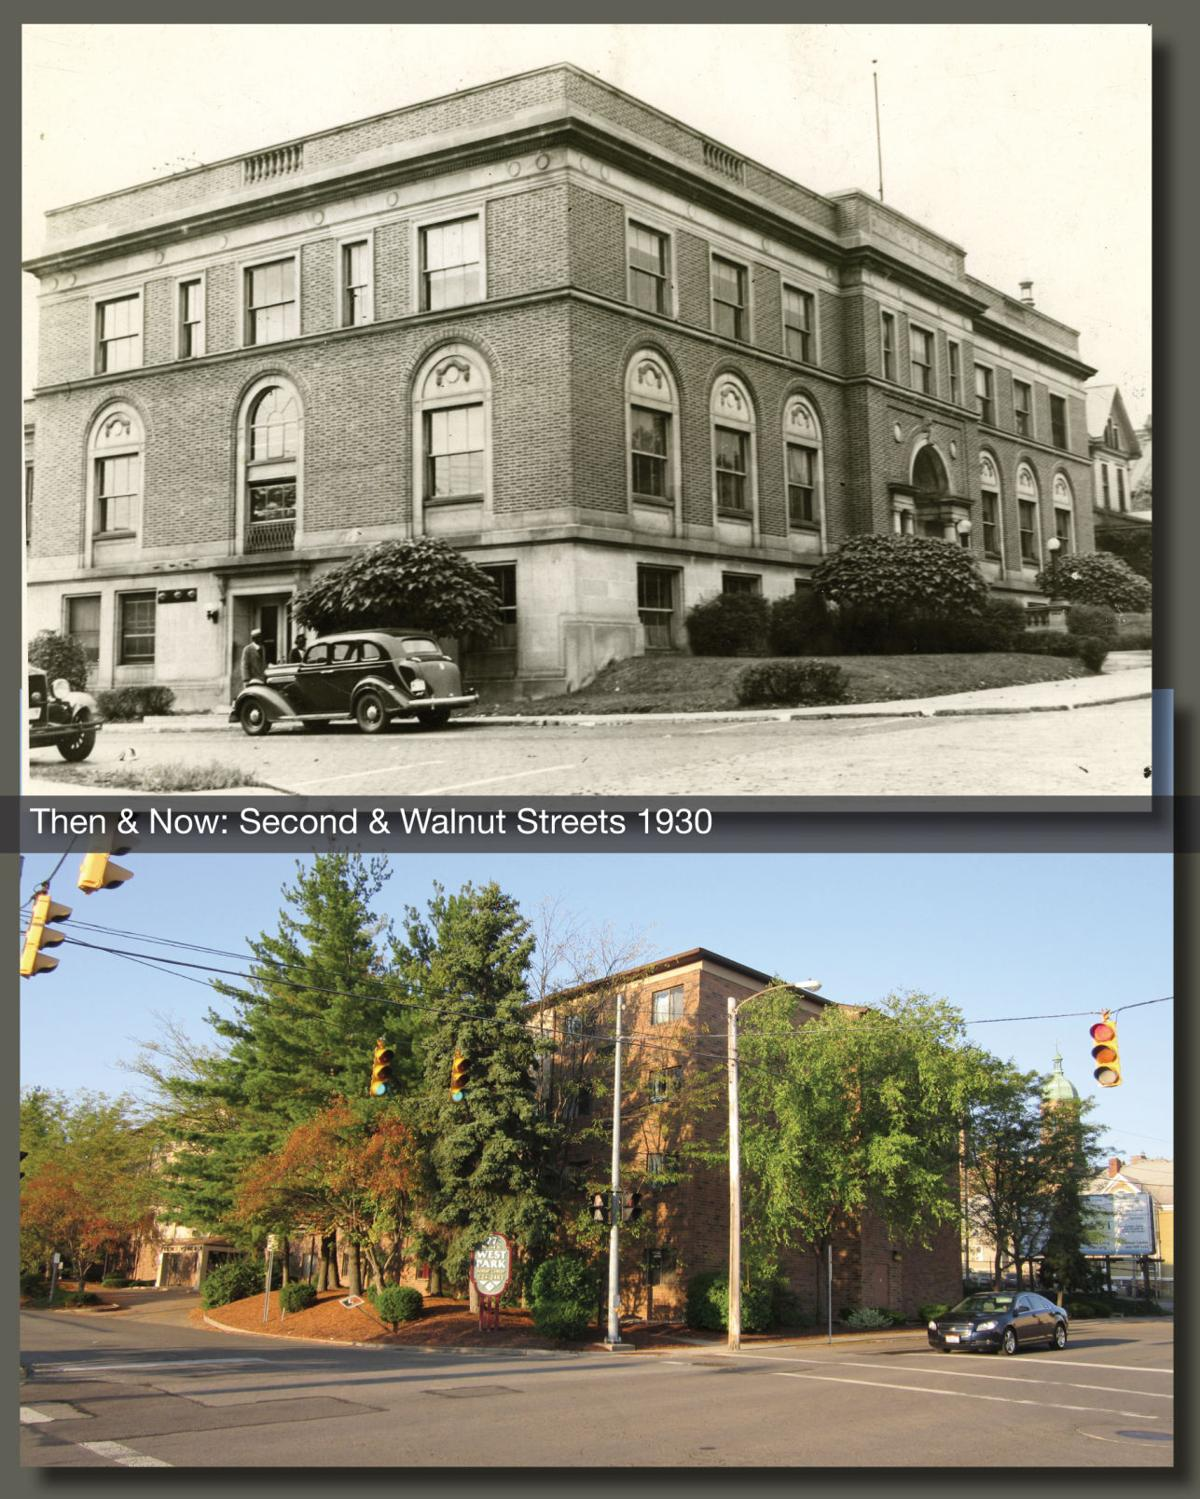 Then & Now: Second & Walnut